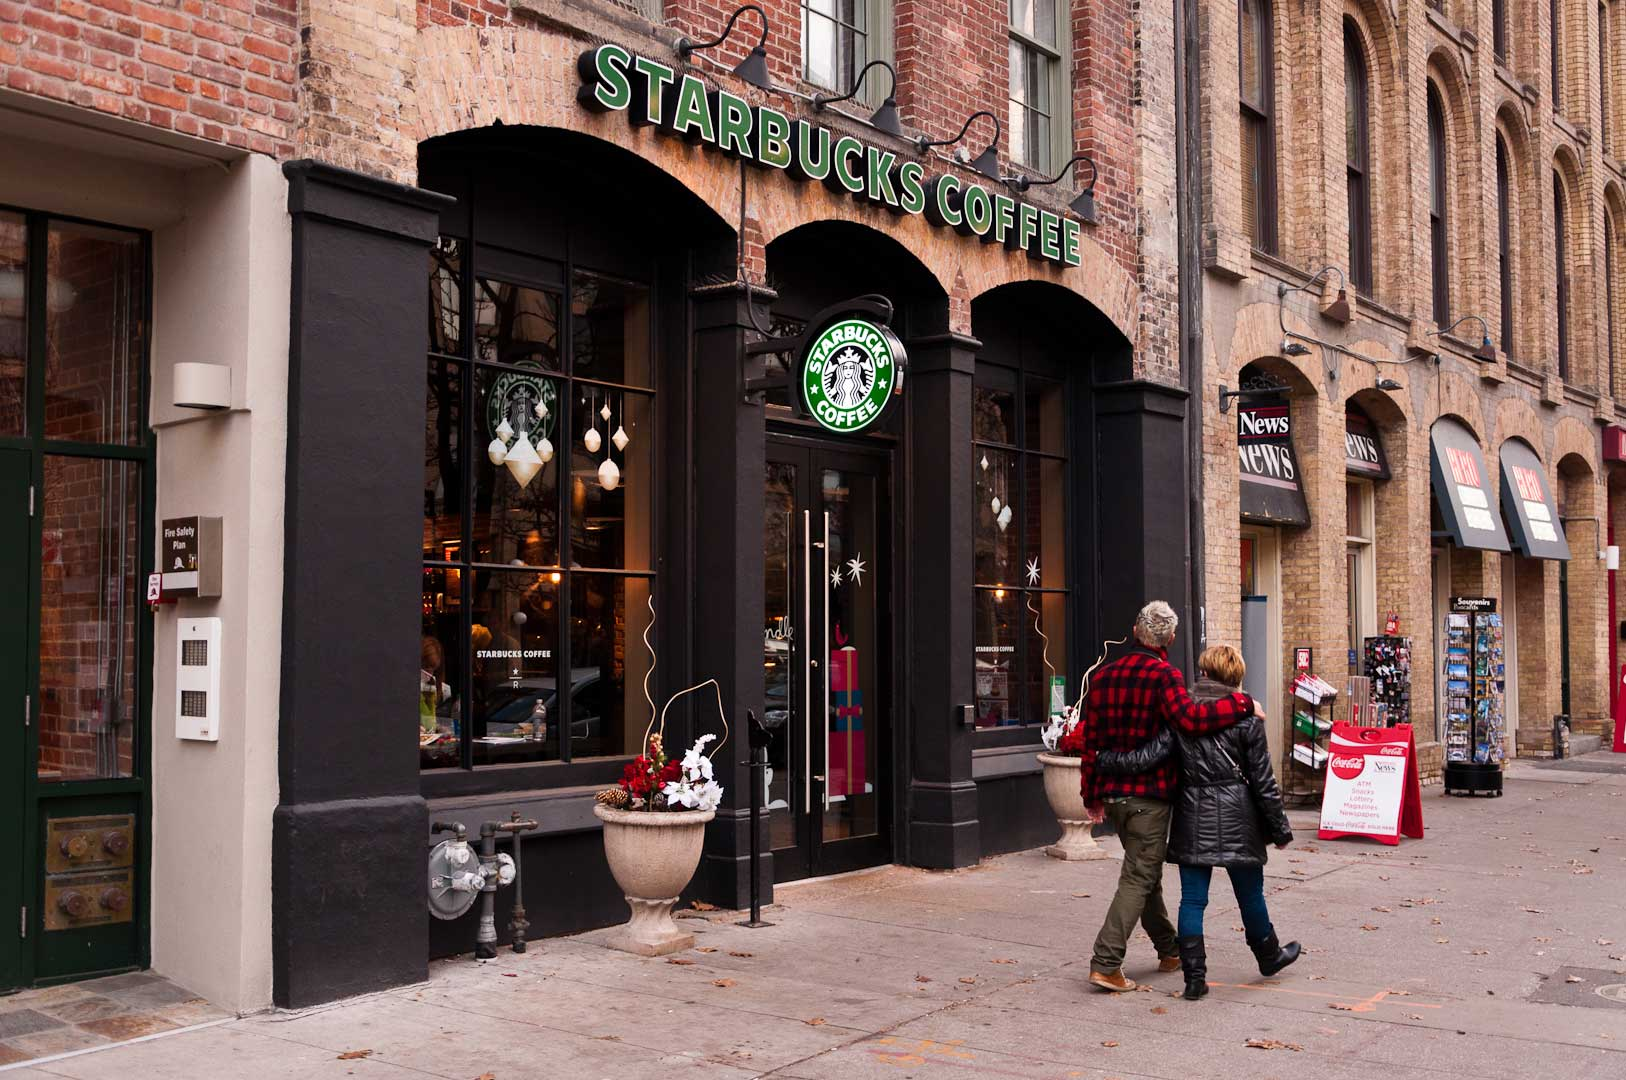 Starbucks Storefront With Hidden Automatic Door Opener by Explore1.ca Toronto